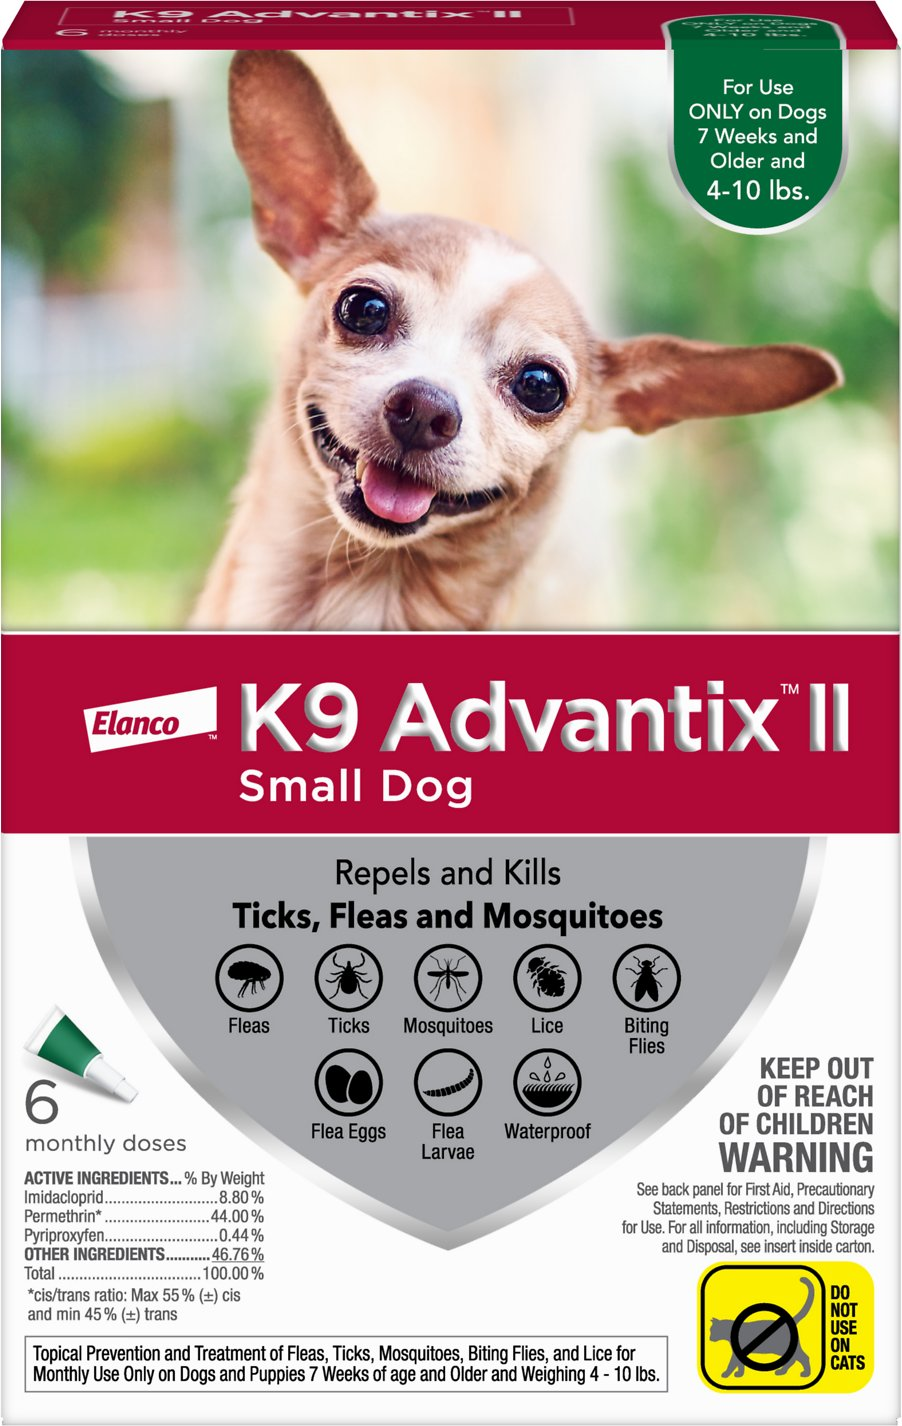 K9 Advantix II Flea Tick Mosquito Prevention For Small Dogs Up To 4 10 Lbs